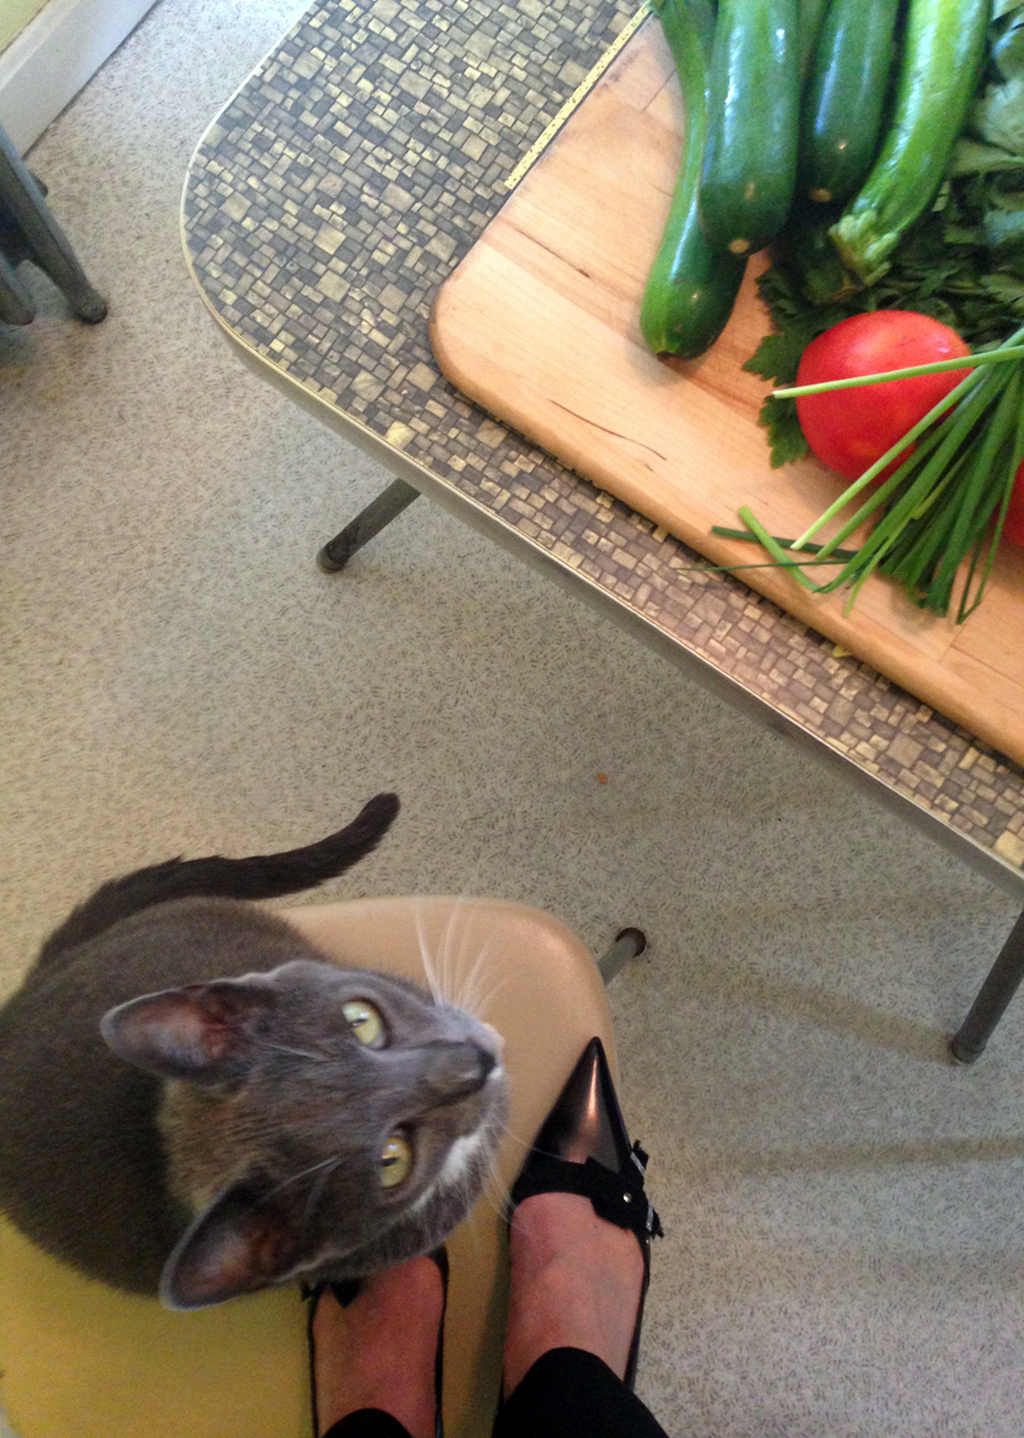 I had a helper during the photography session. Chet is a either fan of local produce or pointy-toes Prada pumps!